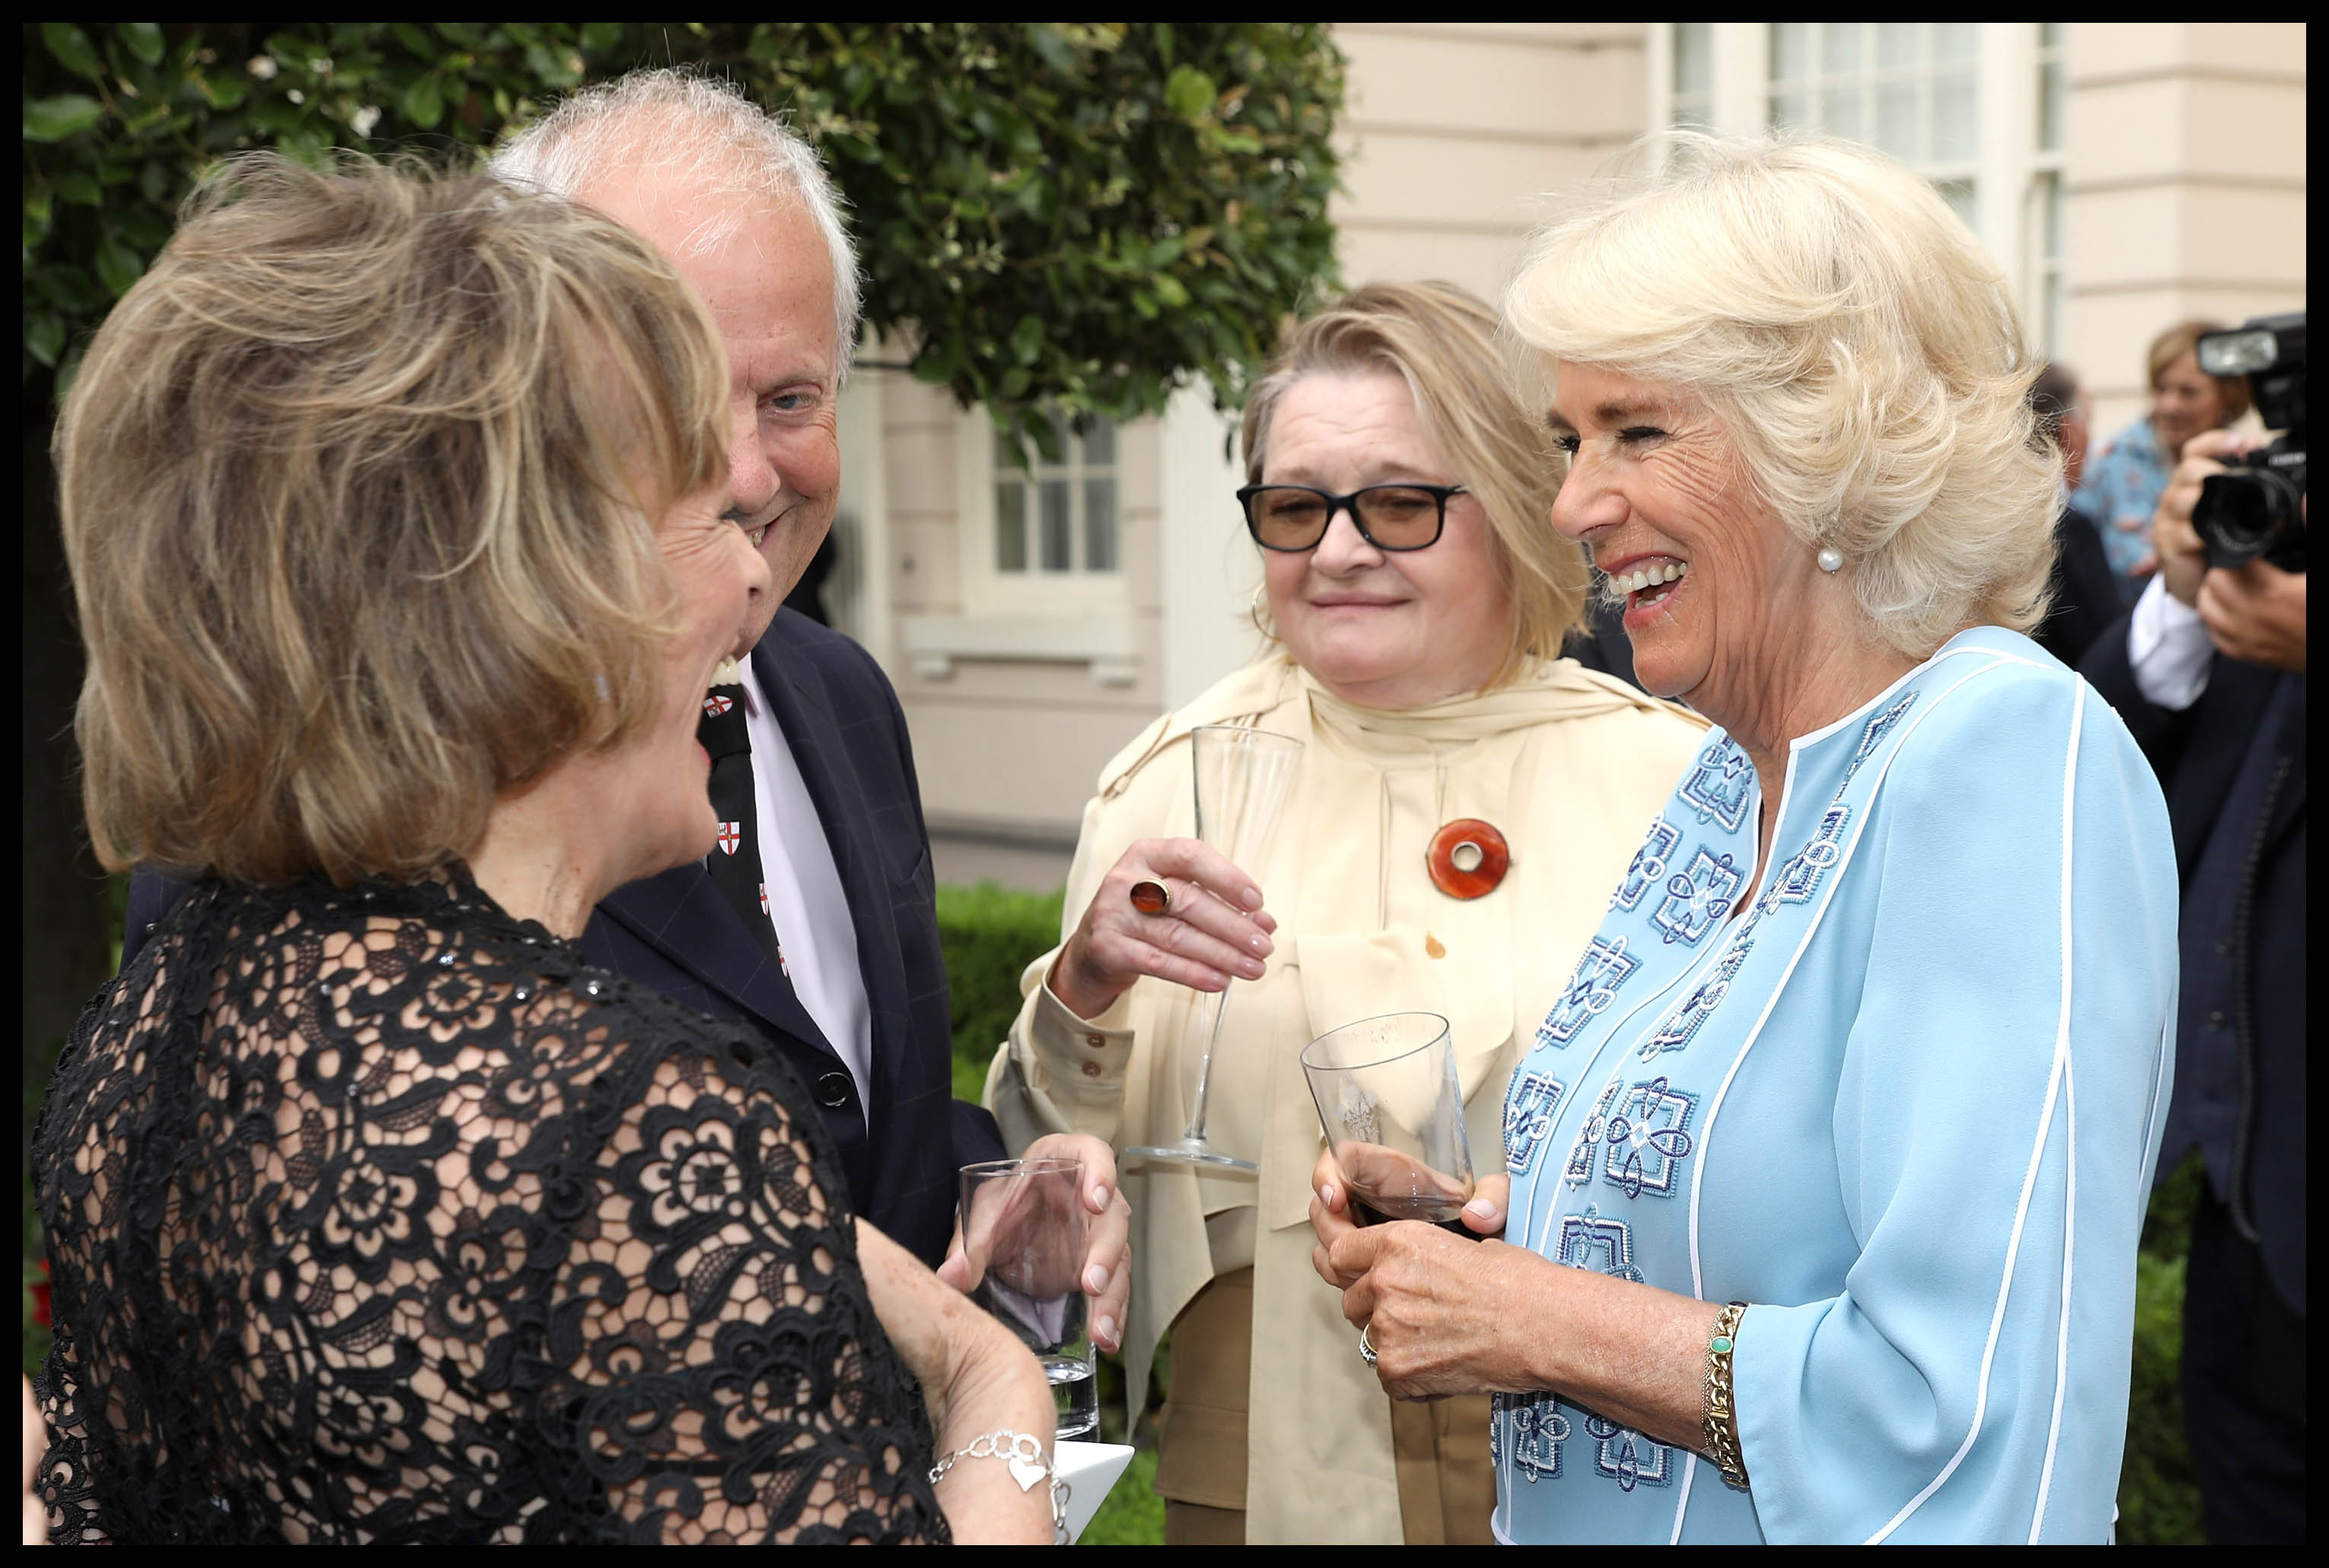 Camilla greets horses and sees cancer support charity in Aberdeen